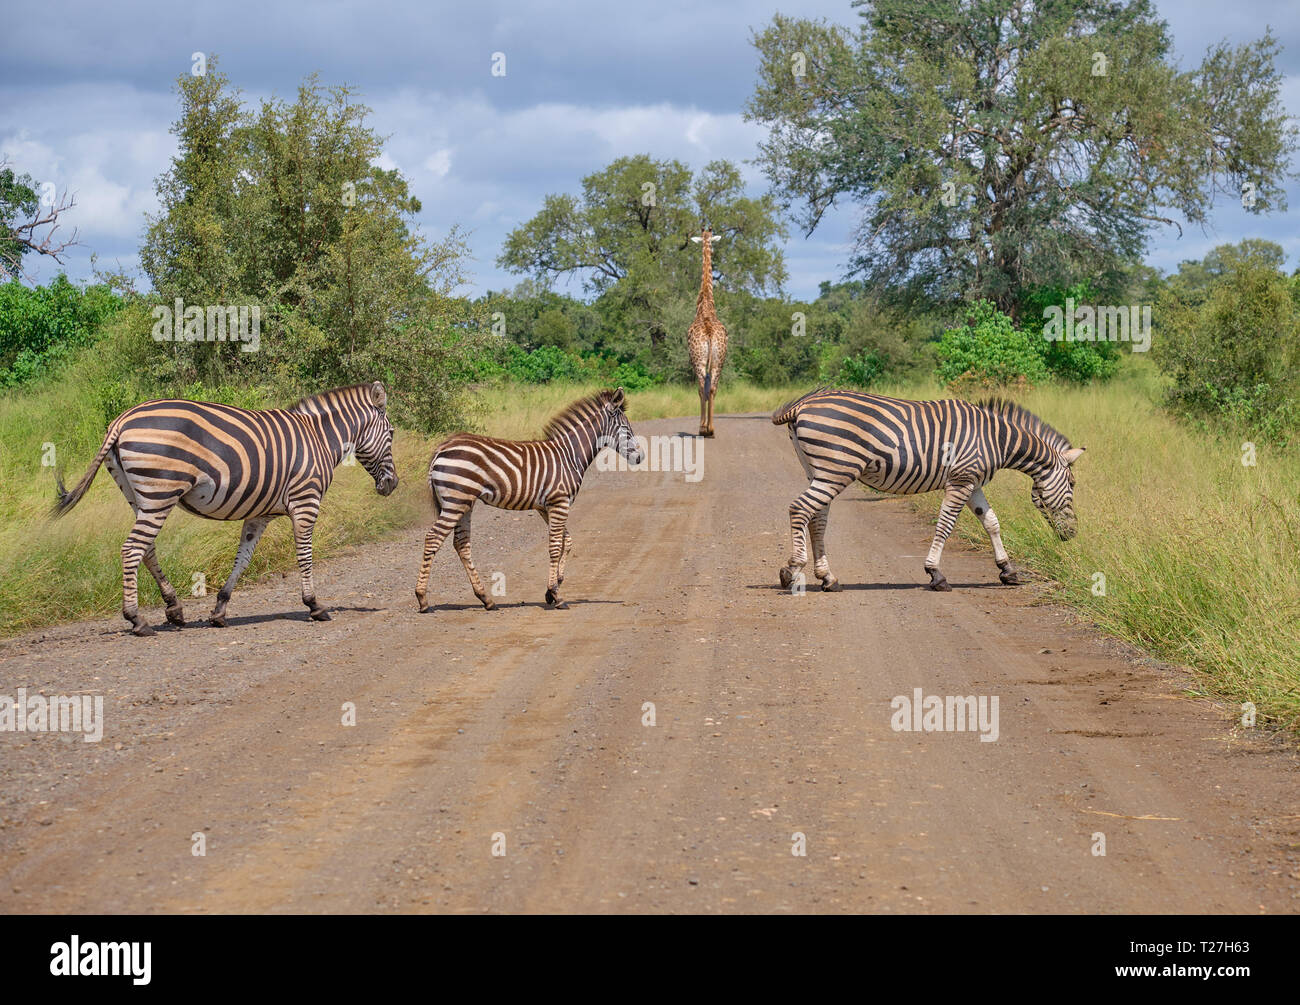 Family on Burchell Zebras, two adults on juvenile, crossing dirt road while a giraffe walks away in backgound Stock Photo